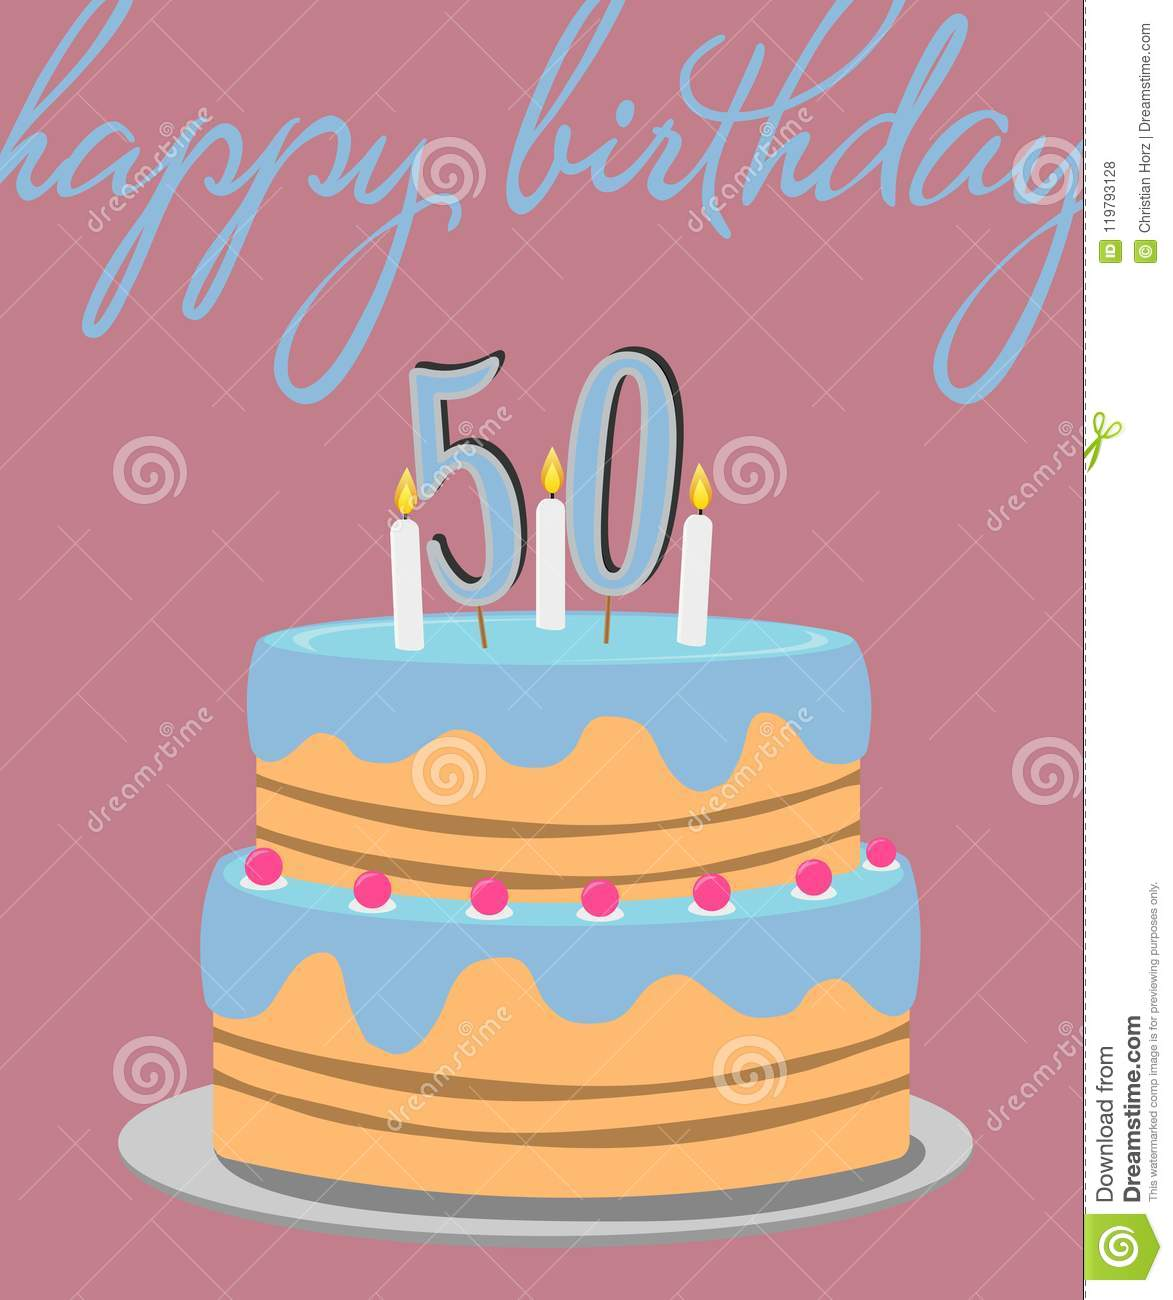 Happy 50th birthday greeting card with birthday cake illustration download happy 50th birthday greeting card with birthday cake illustration stock vector illustration of celebration m4hsunfo